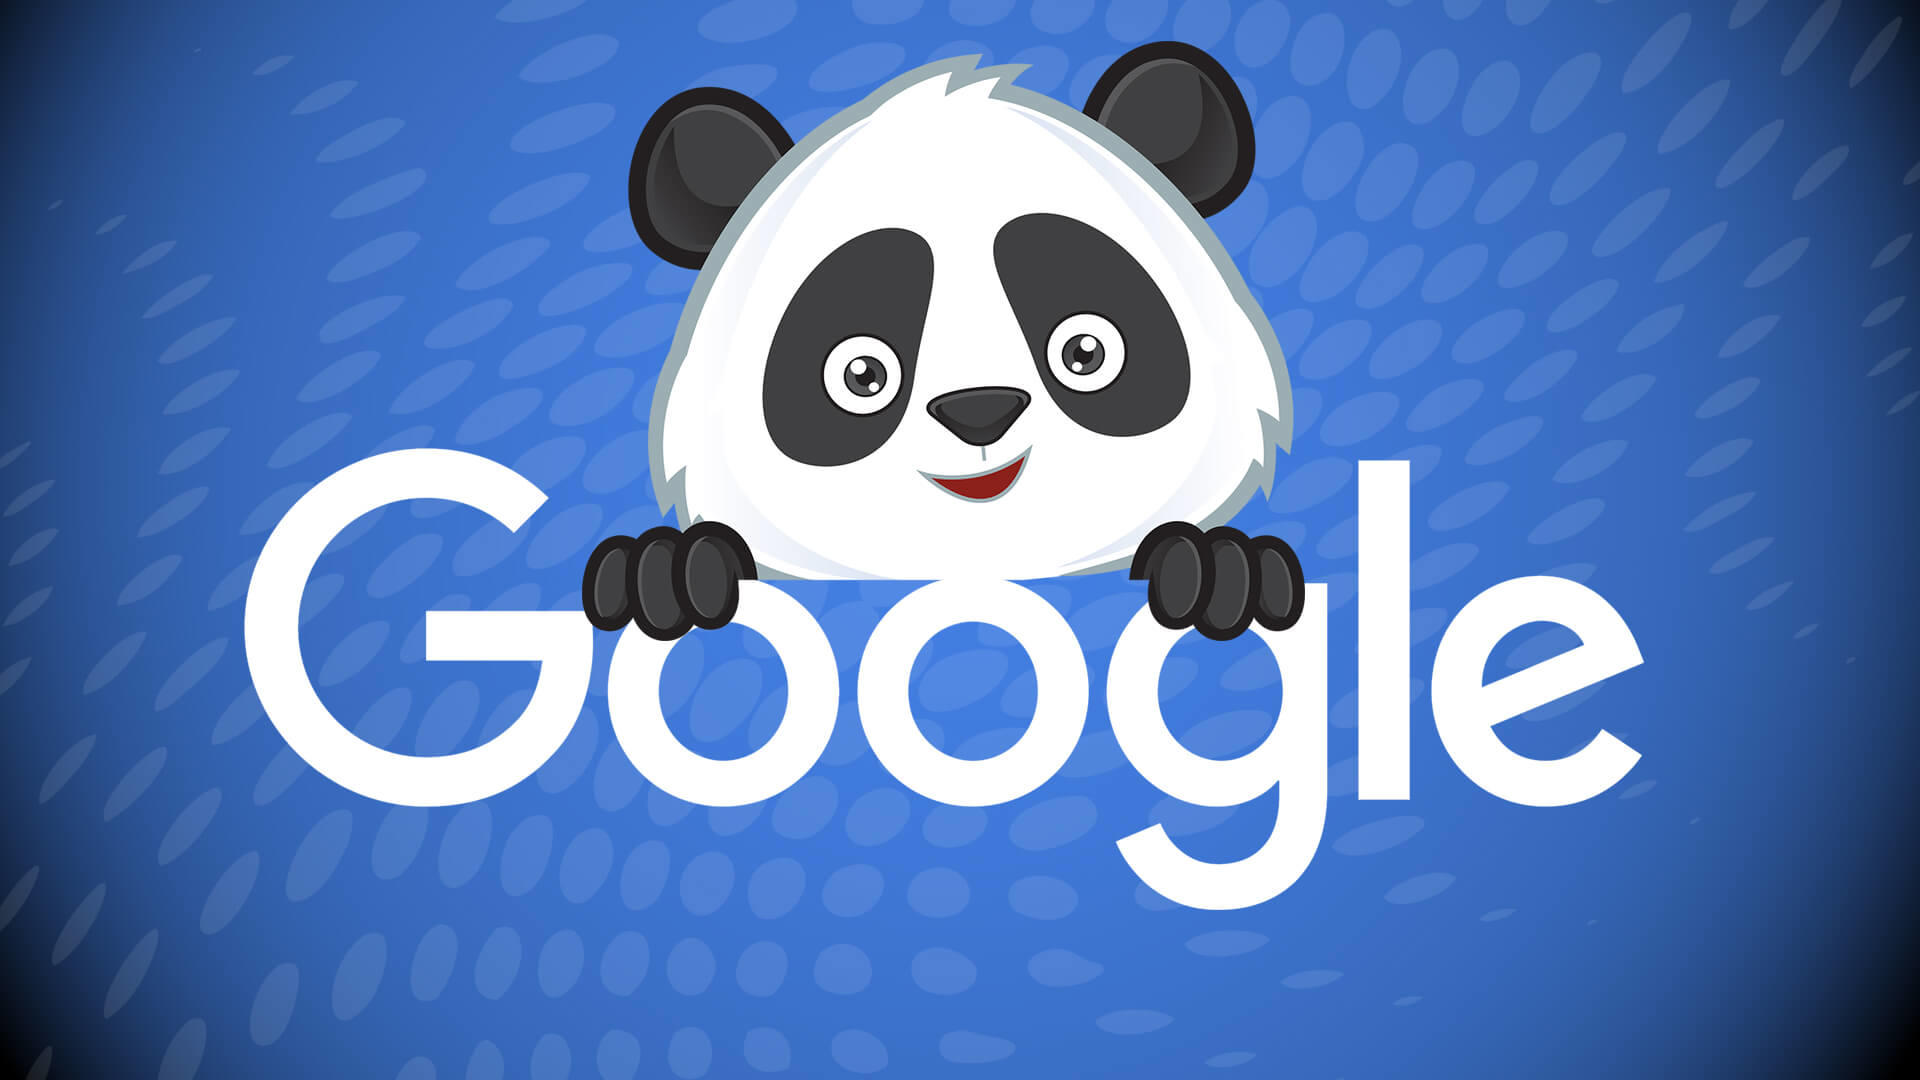 Google Fred Update Panda